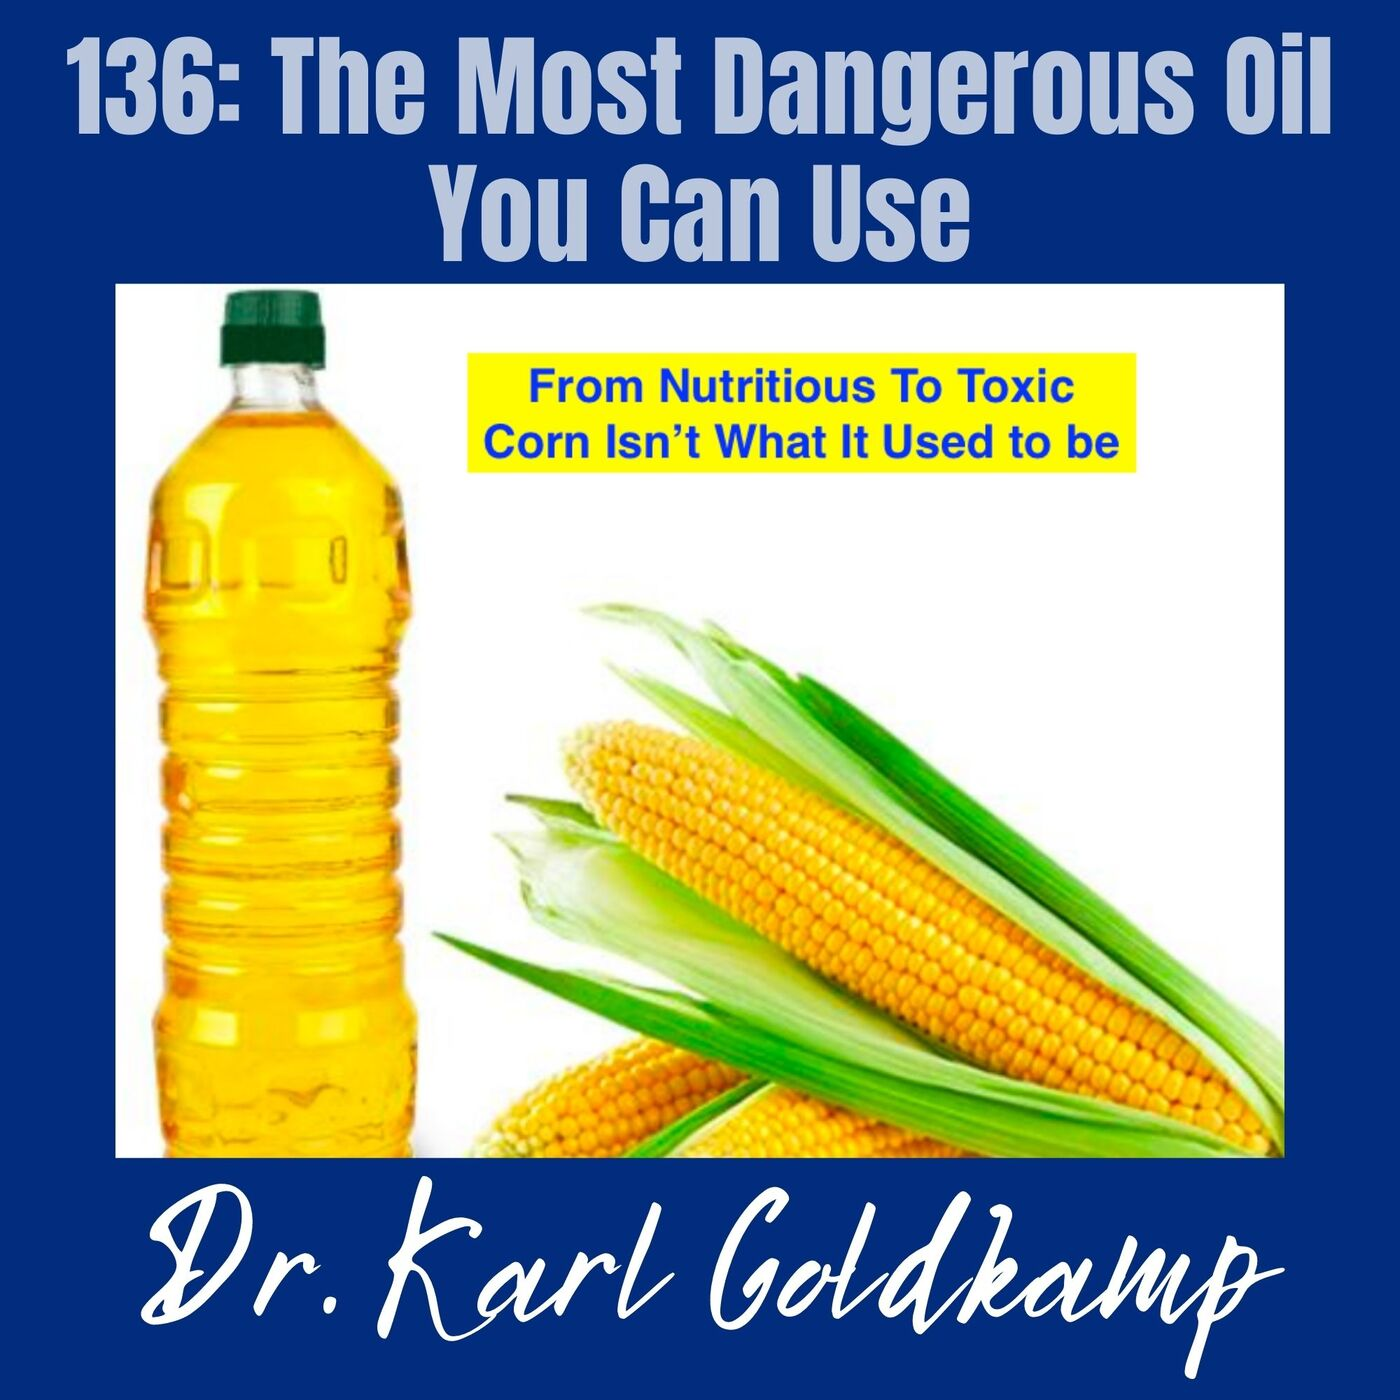 136: The Most Dangerous Oil You Can Use